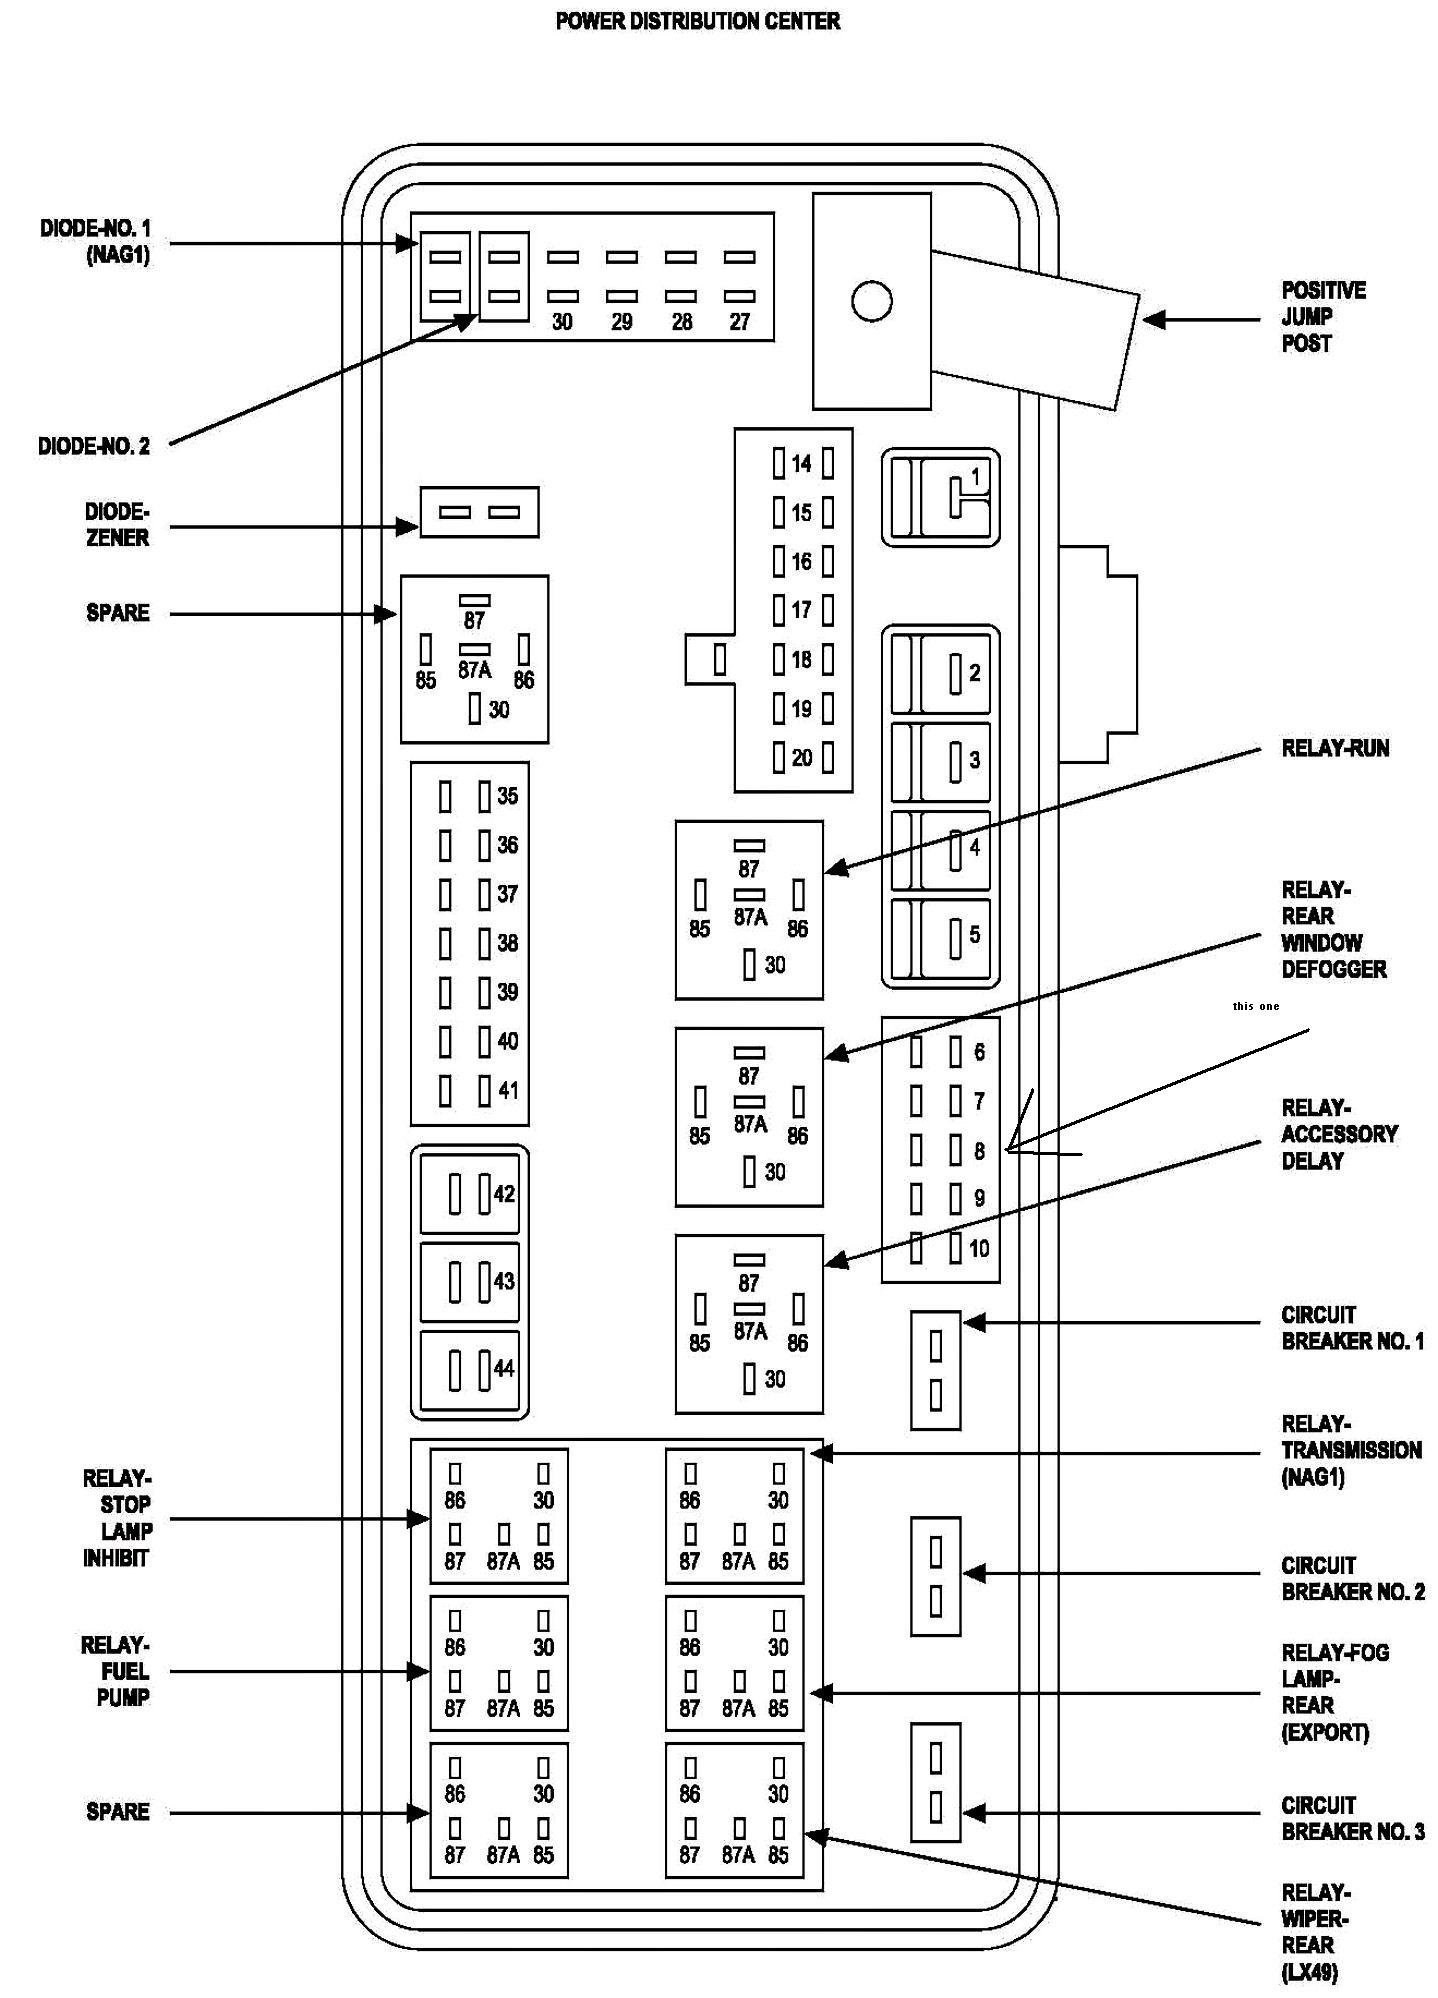 Wiring Diagram As Well 2006 Dodge Ram 1500 Radio Wiring Diagram 2006